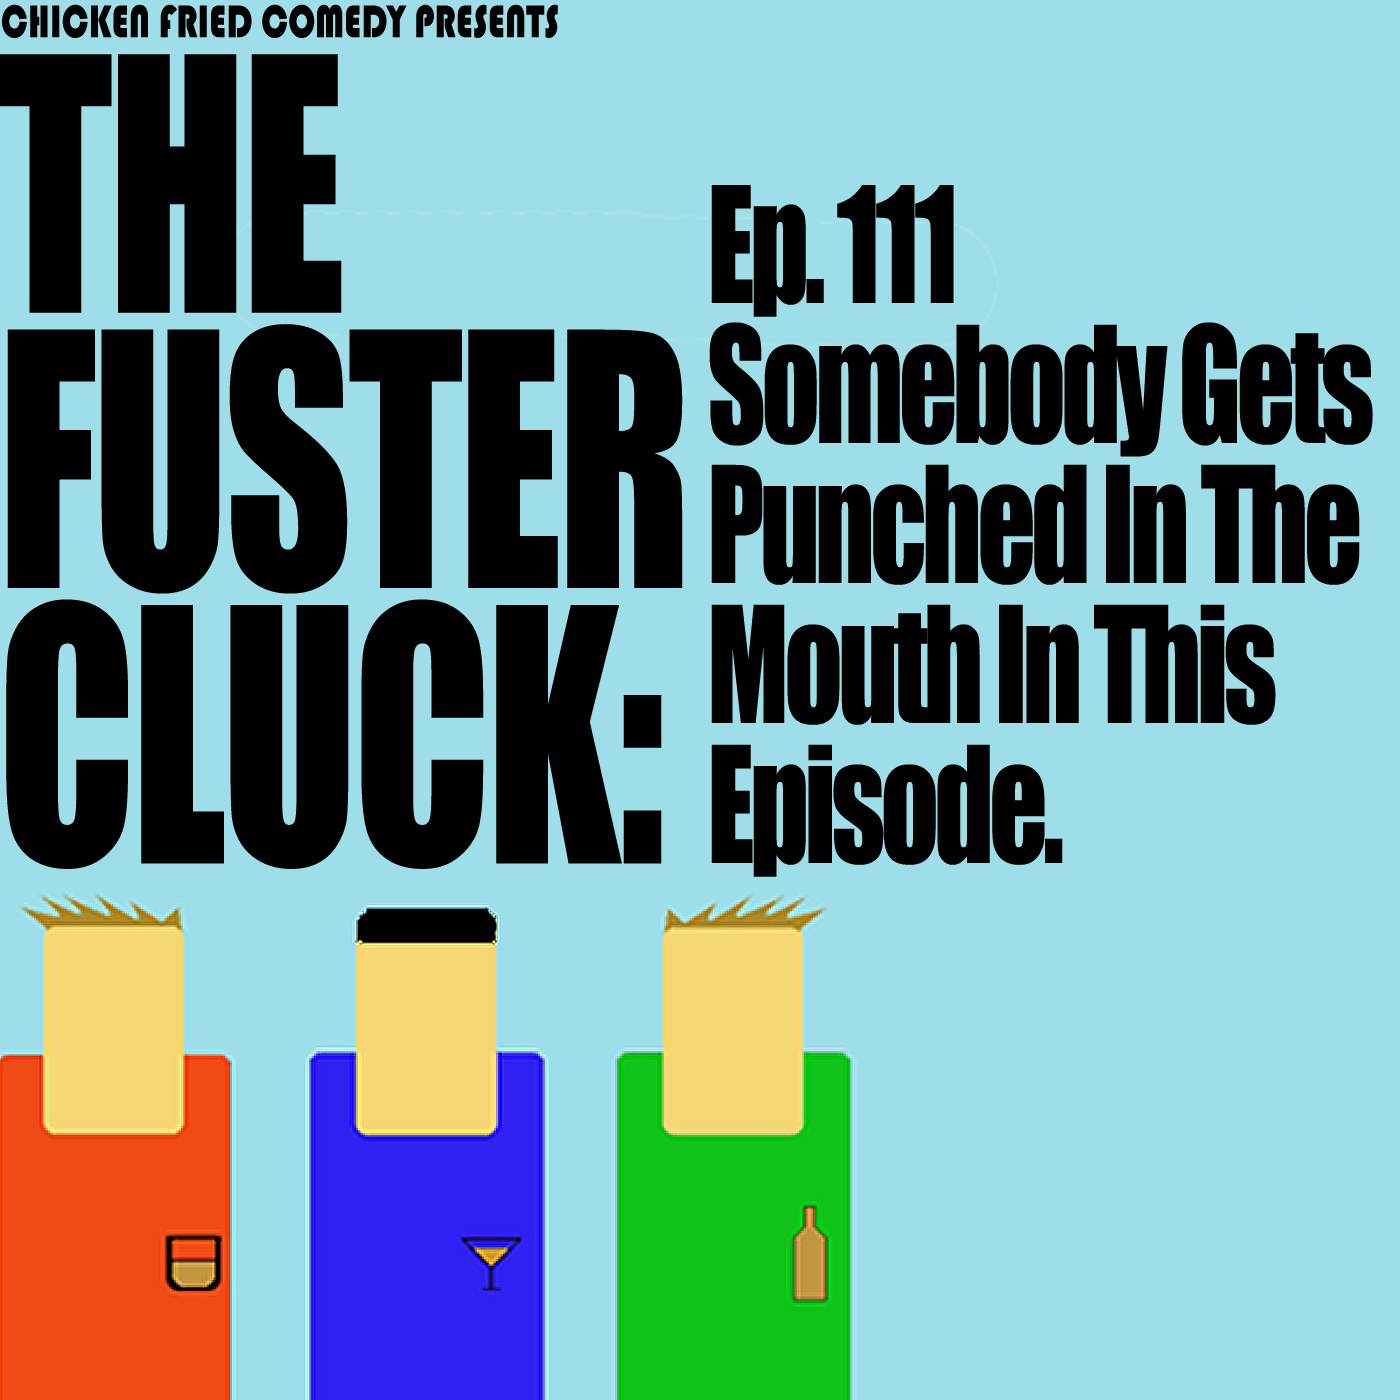 The Fustercluck Ep 111: Somebody Gets Punched In The Mouth In This Episode.